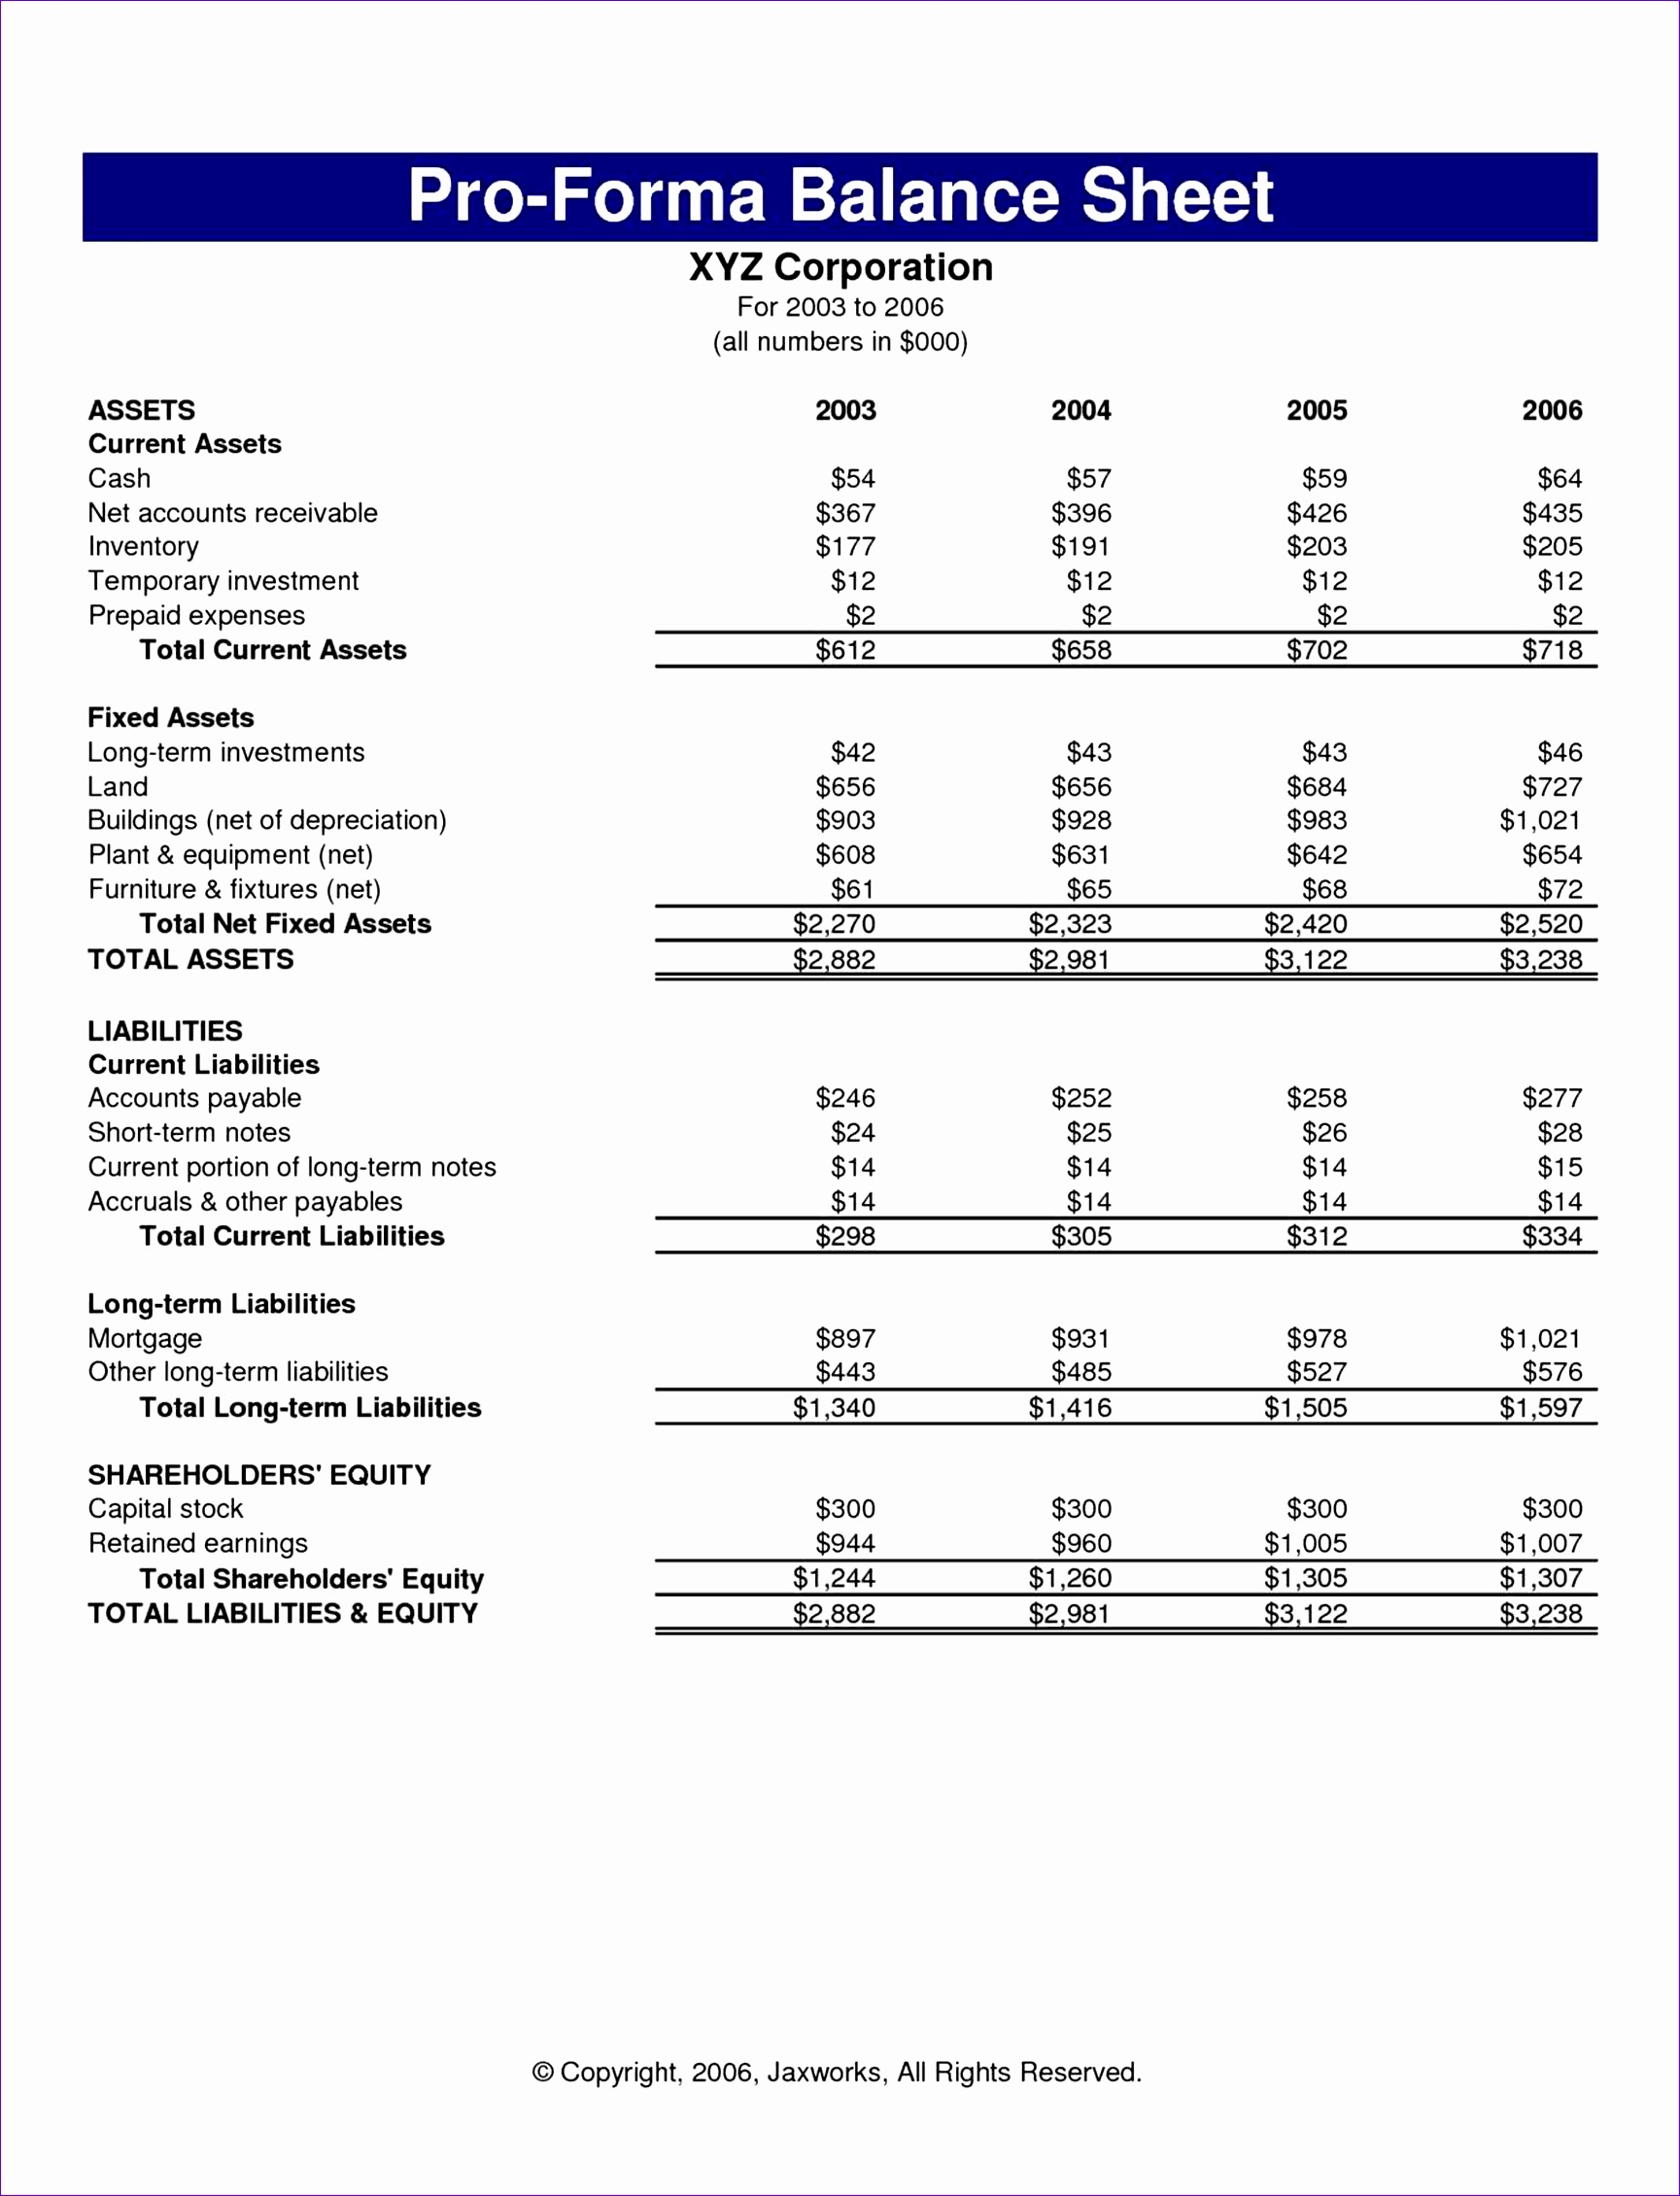 Pro Forma Balance Sheet forma financial statements example authorization letter pdf template pro Pro Forma Balance Sheet forma financial statements template authorization